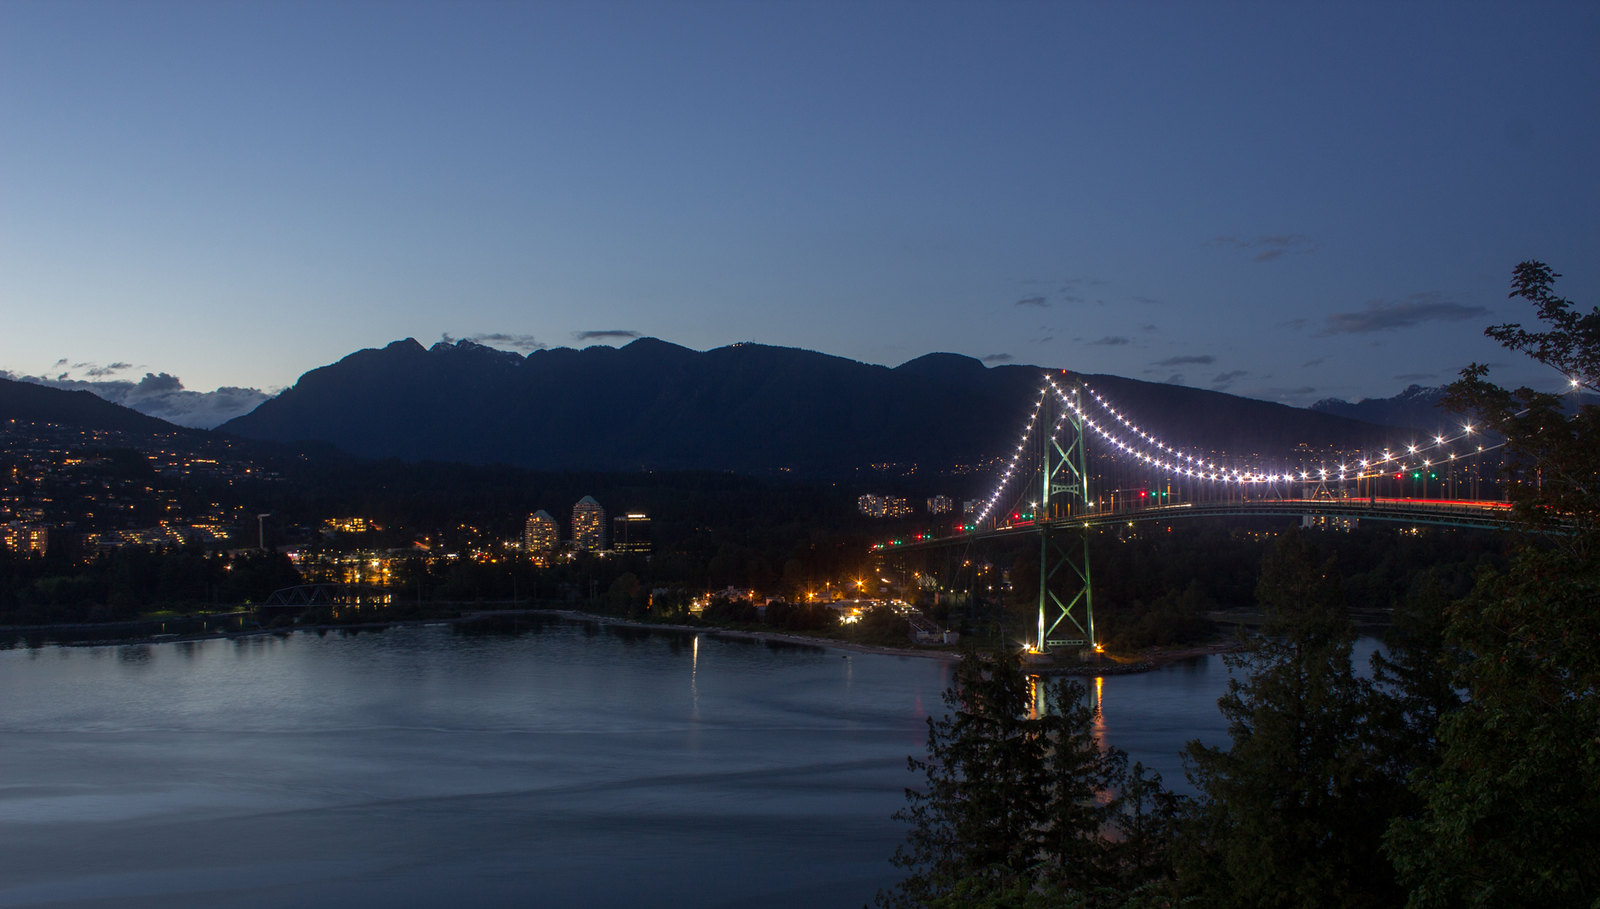 View over the Lion's Gate Bridge to North Vancouver and mountains at night